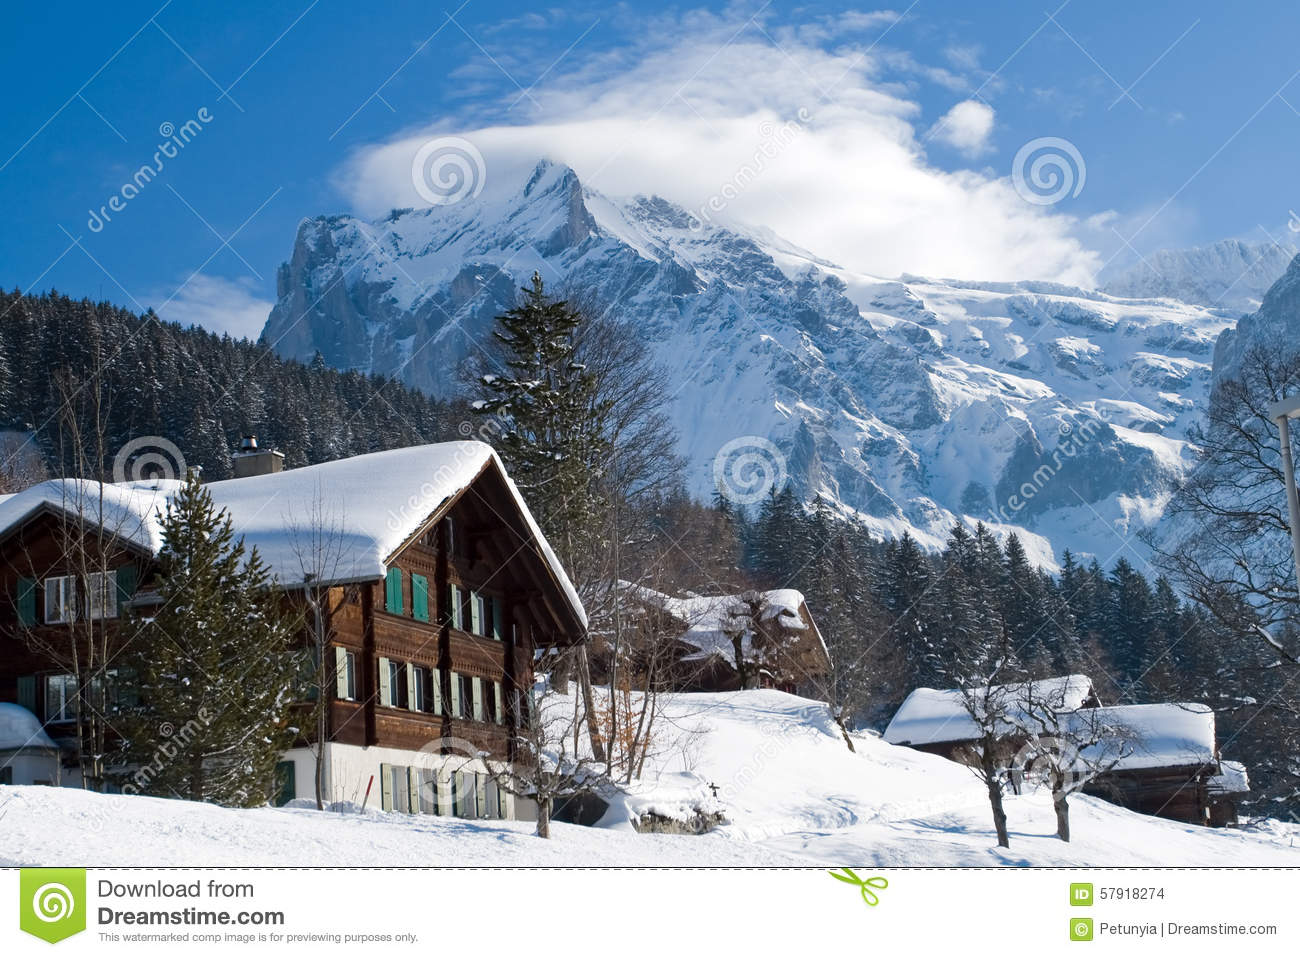 Hotels in Switzerland - winter and cold at all